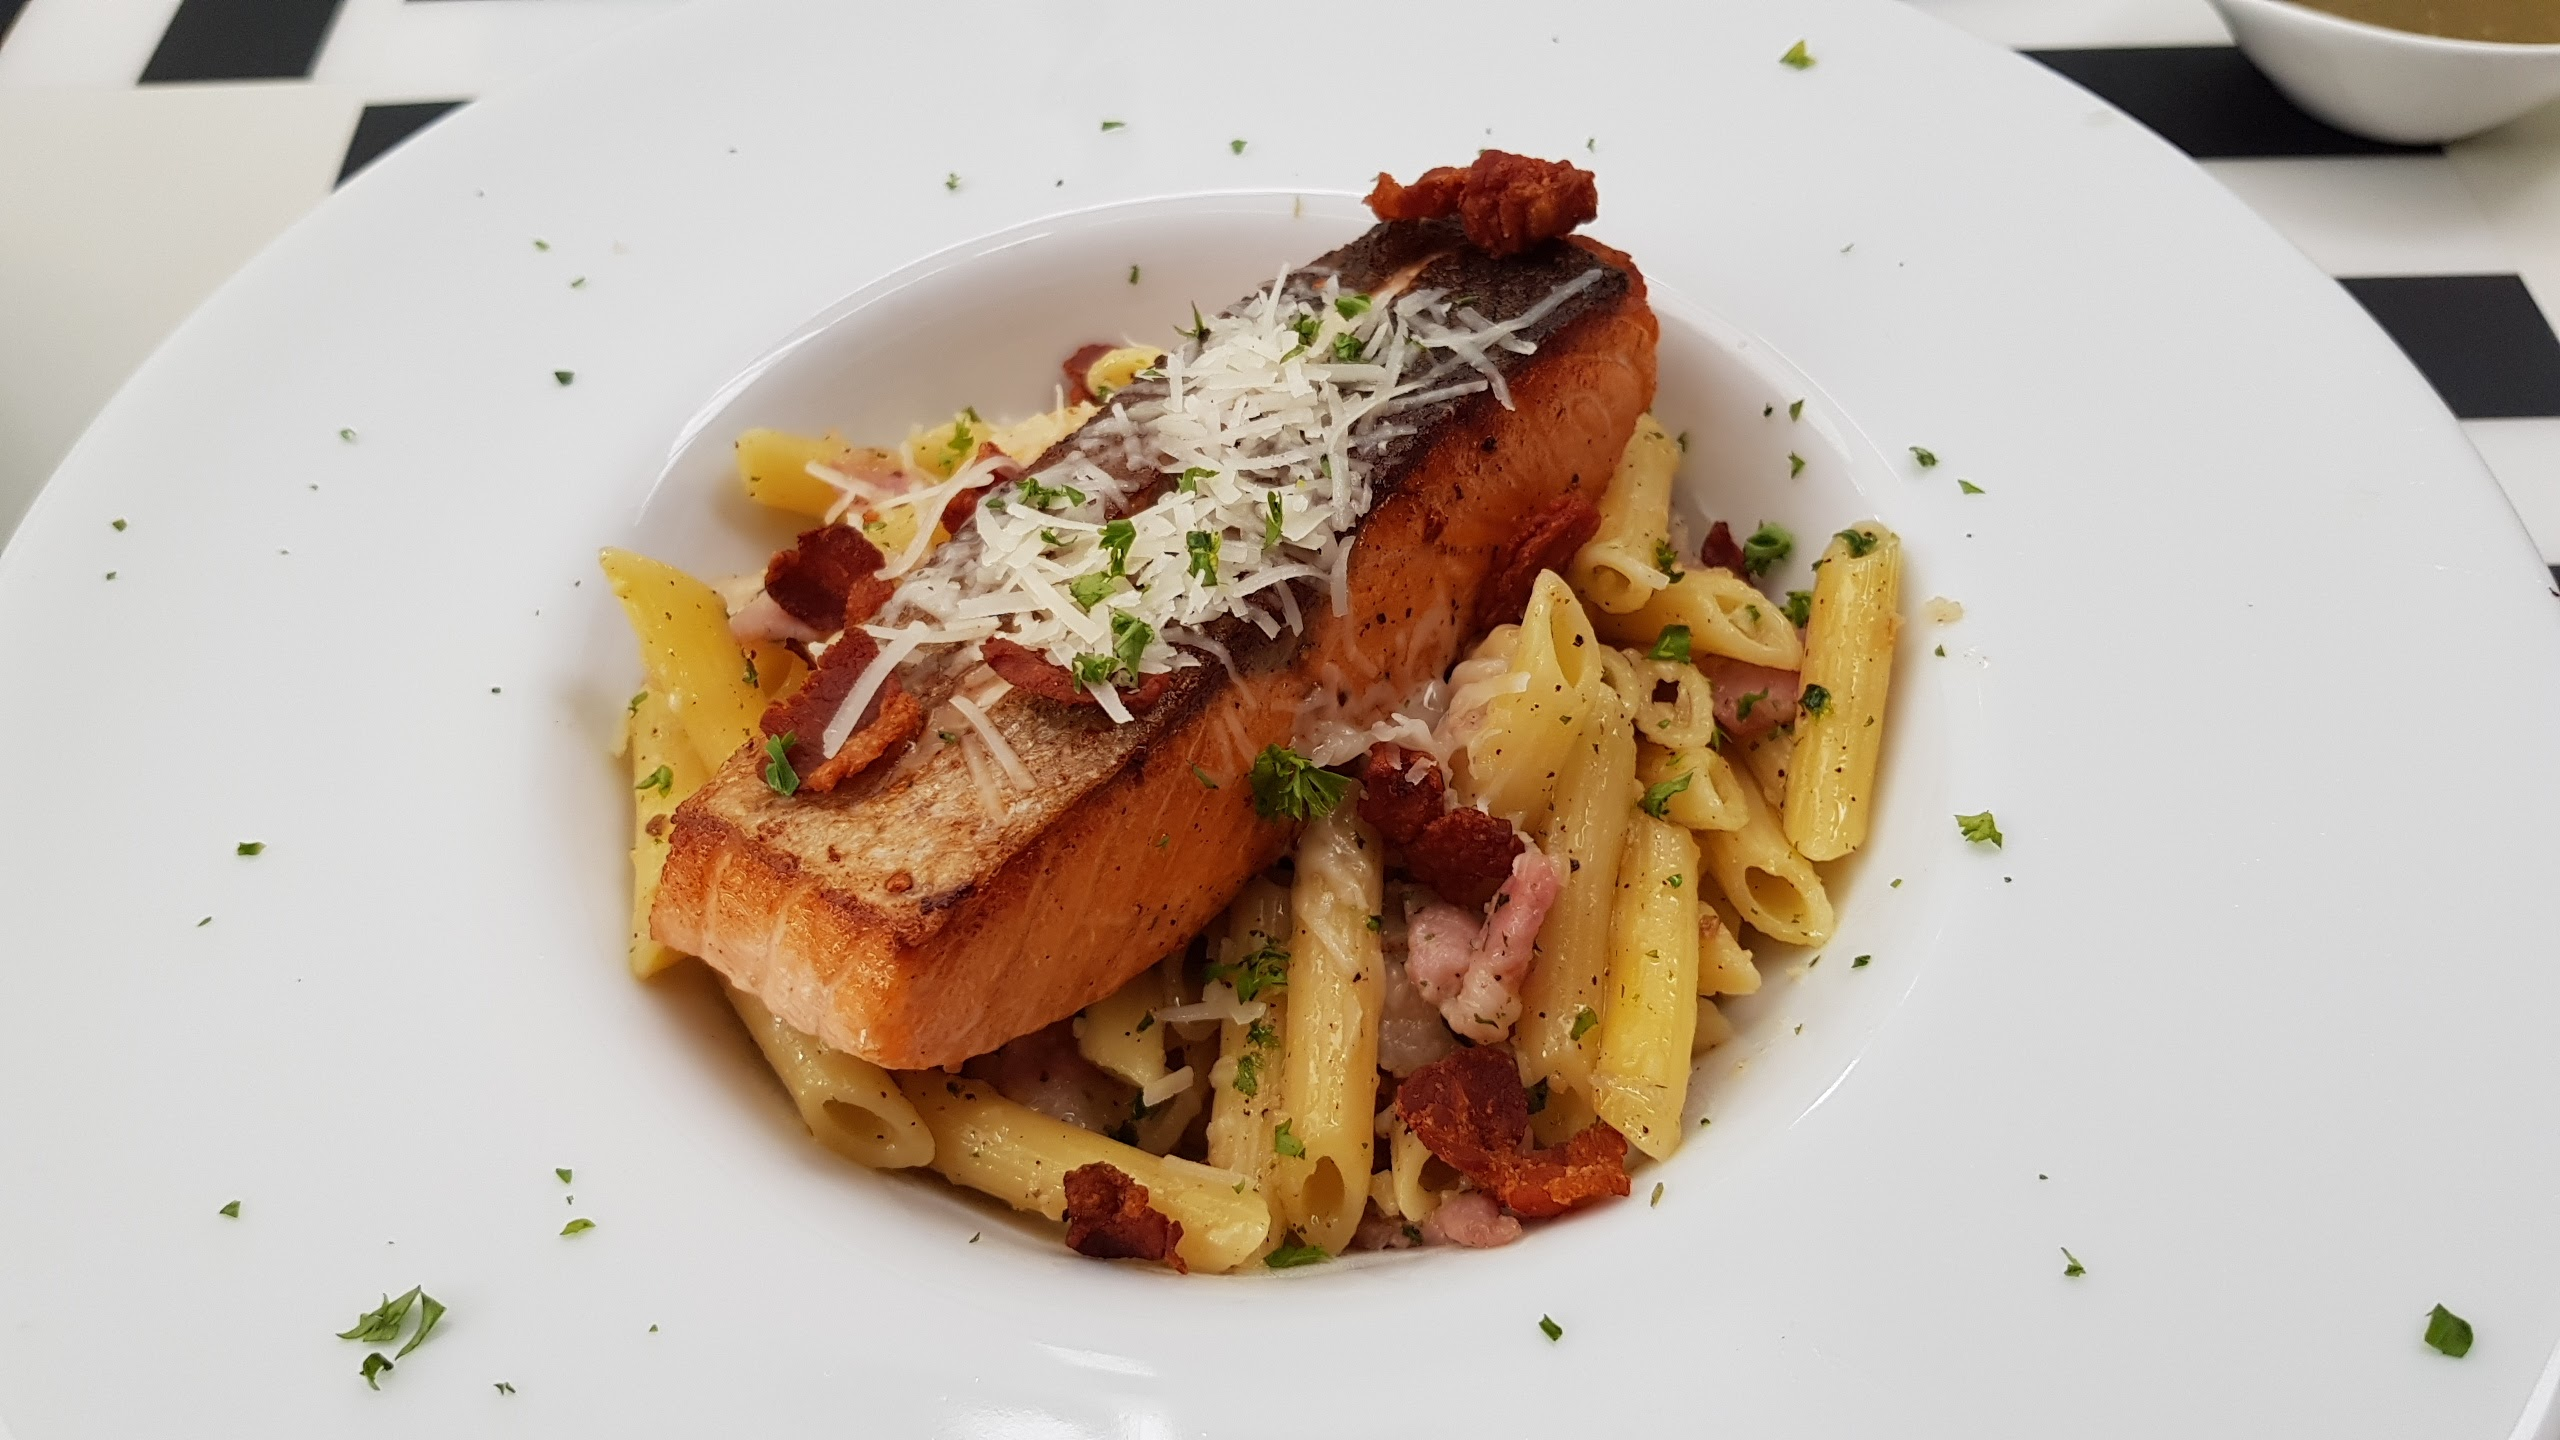 Salmon Steak with Penne